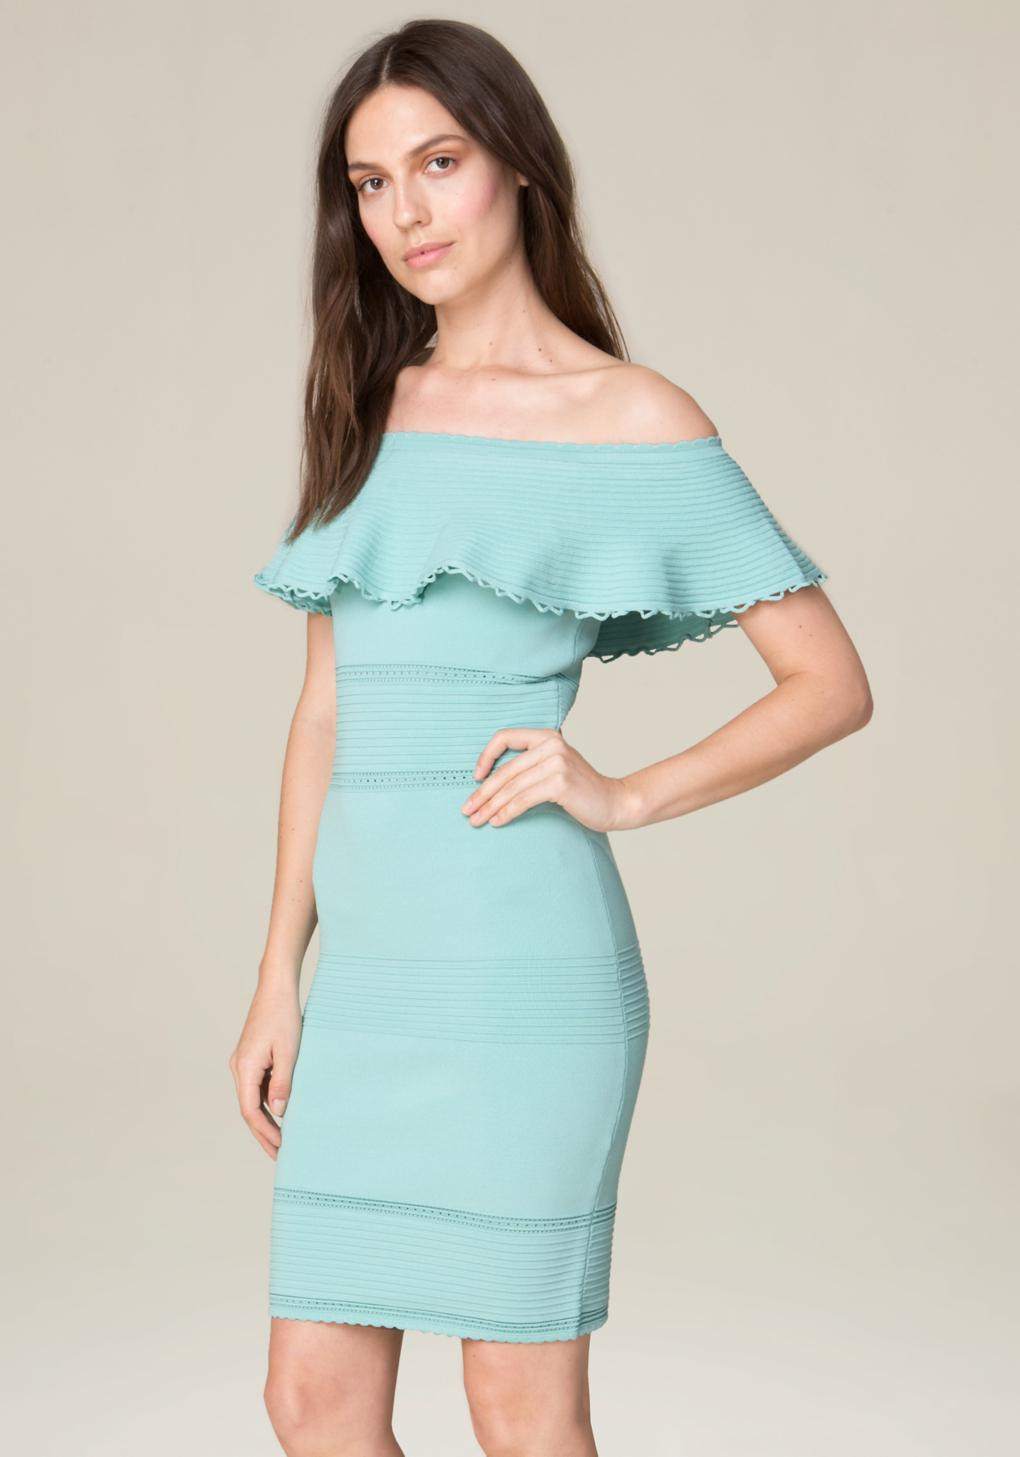 a3c6be426e00 Gallery. Women s Off The Shoulder Dresses ...